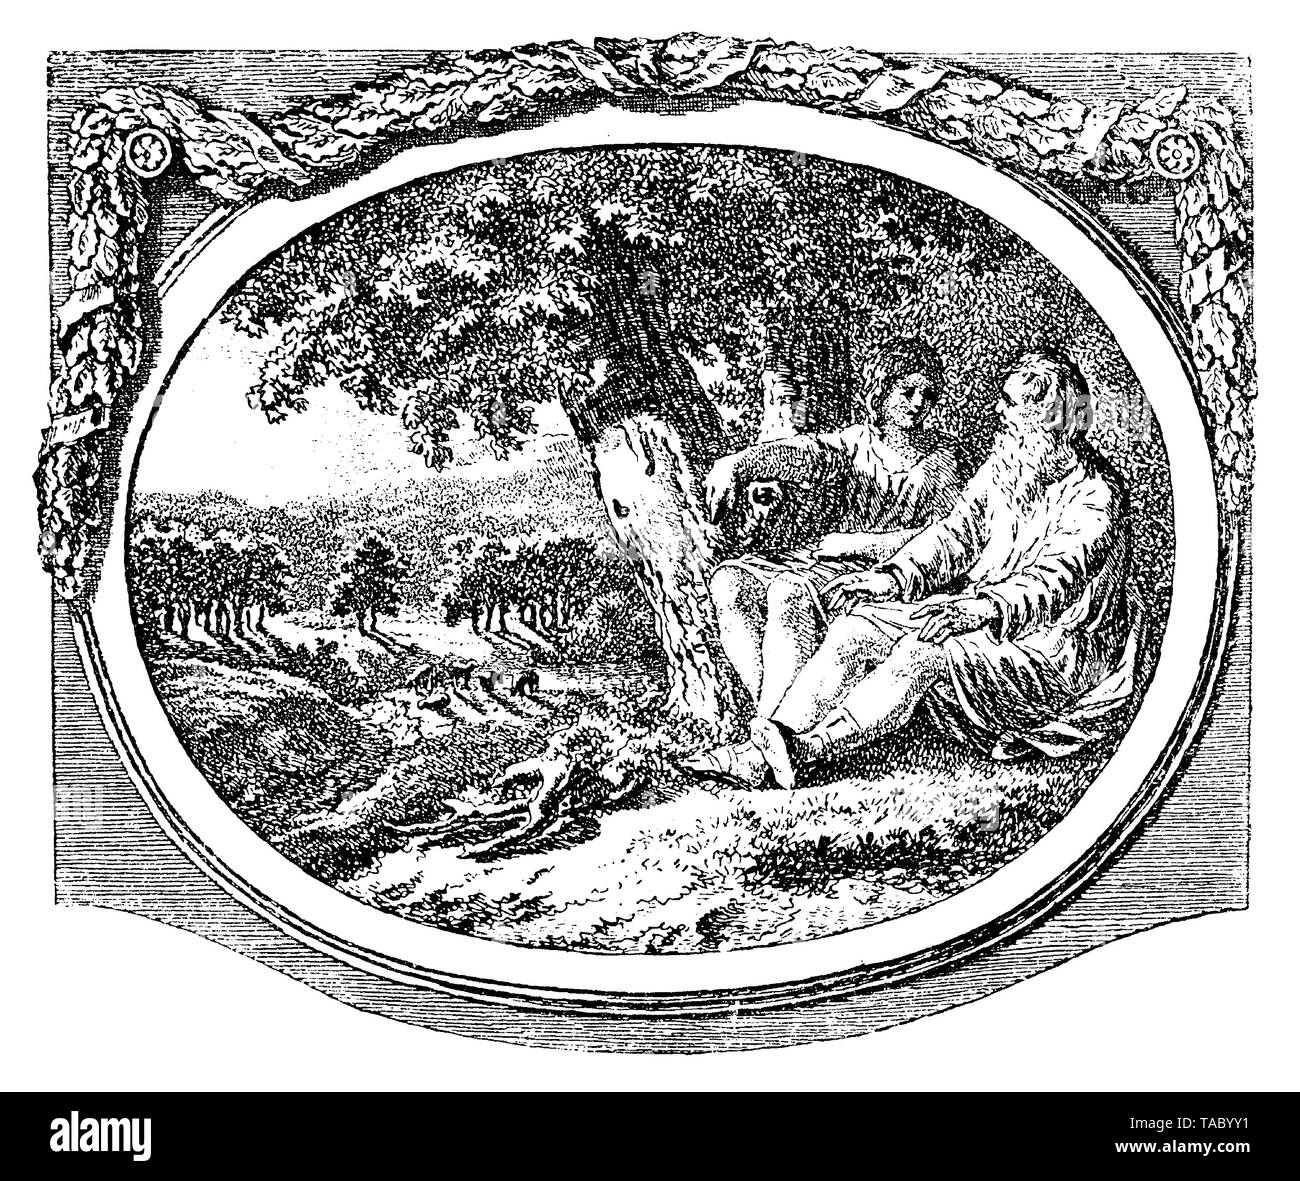 Pastoral scene with an old man and a young woman like two Greek gods sitting under the shadow of a tree,  chapter decoration  by Salomon Gessner 18th century - Stock Image